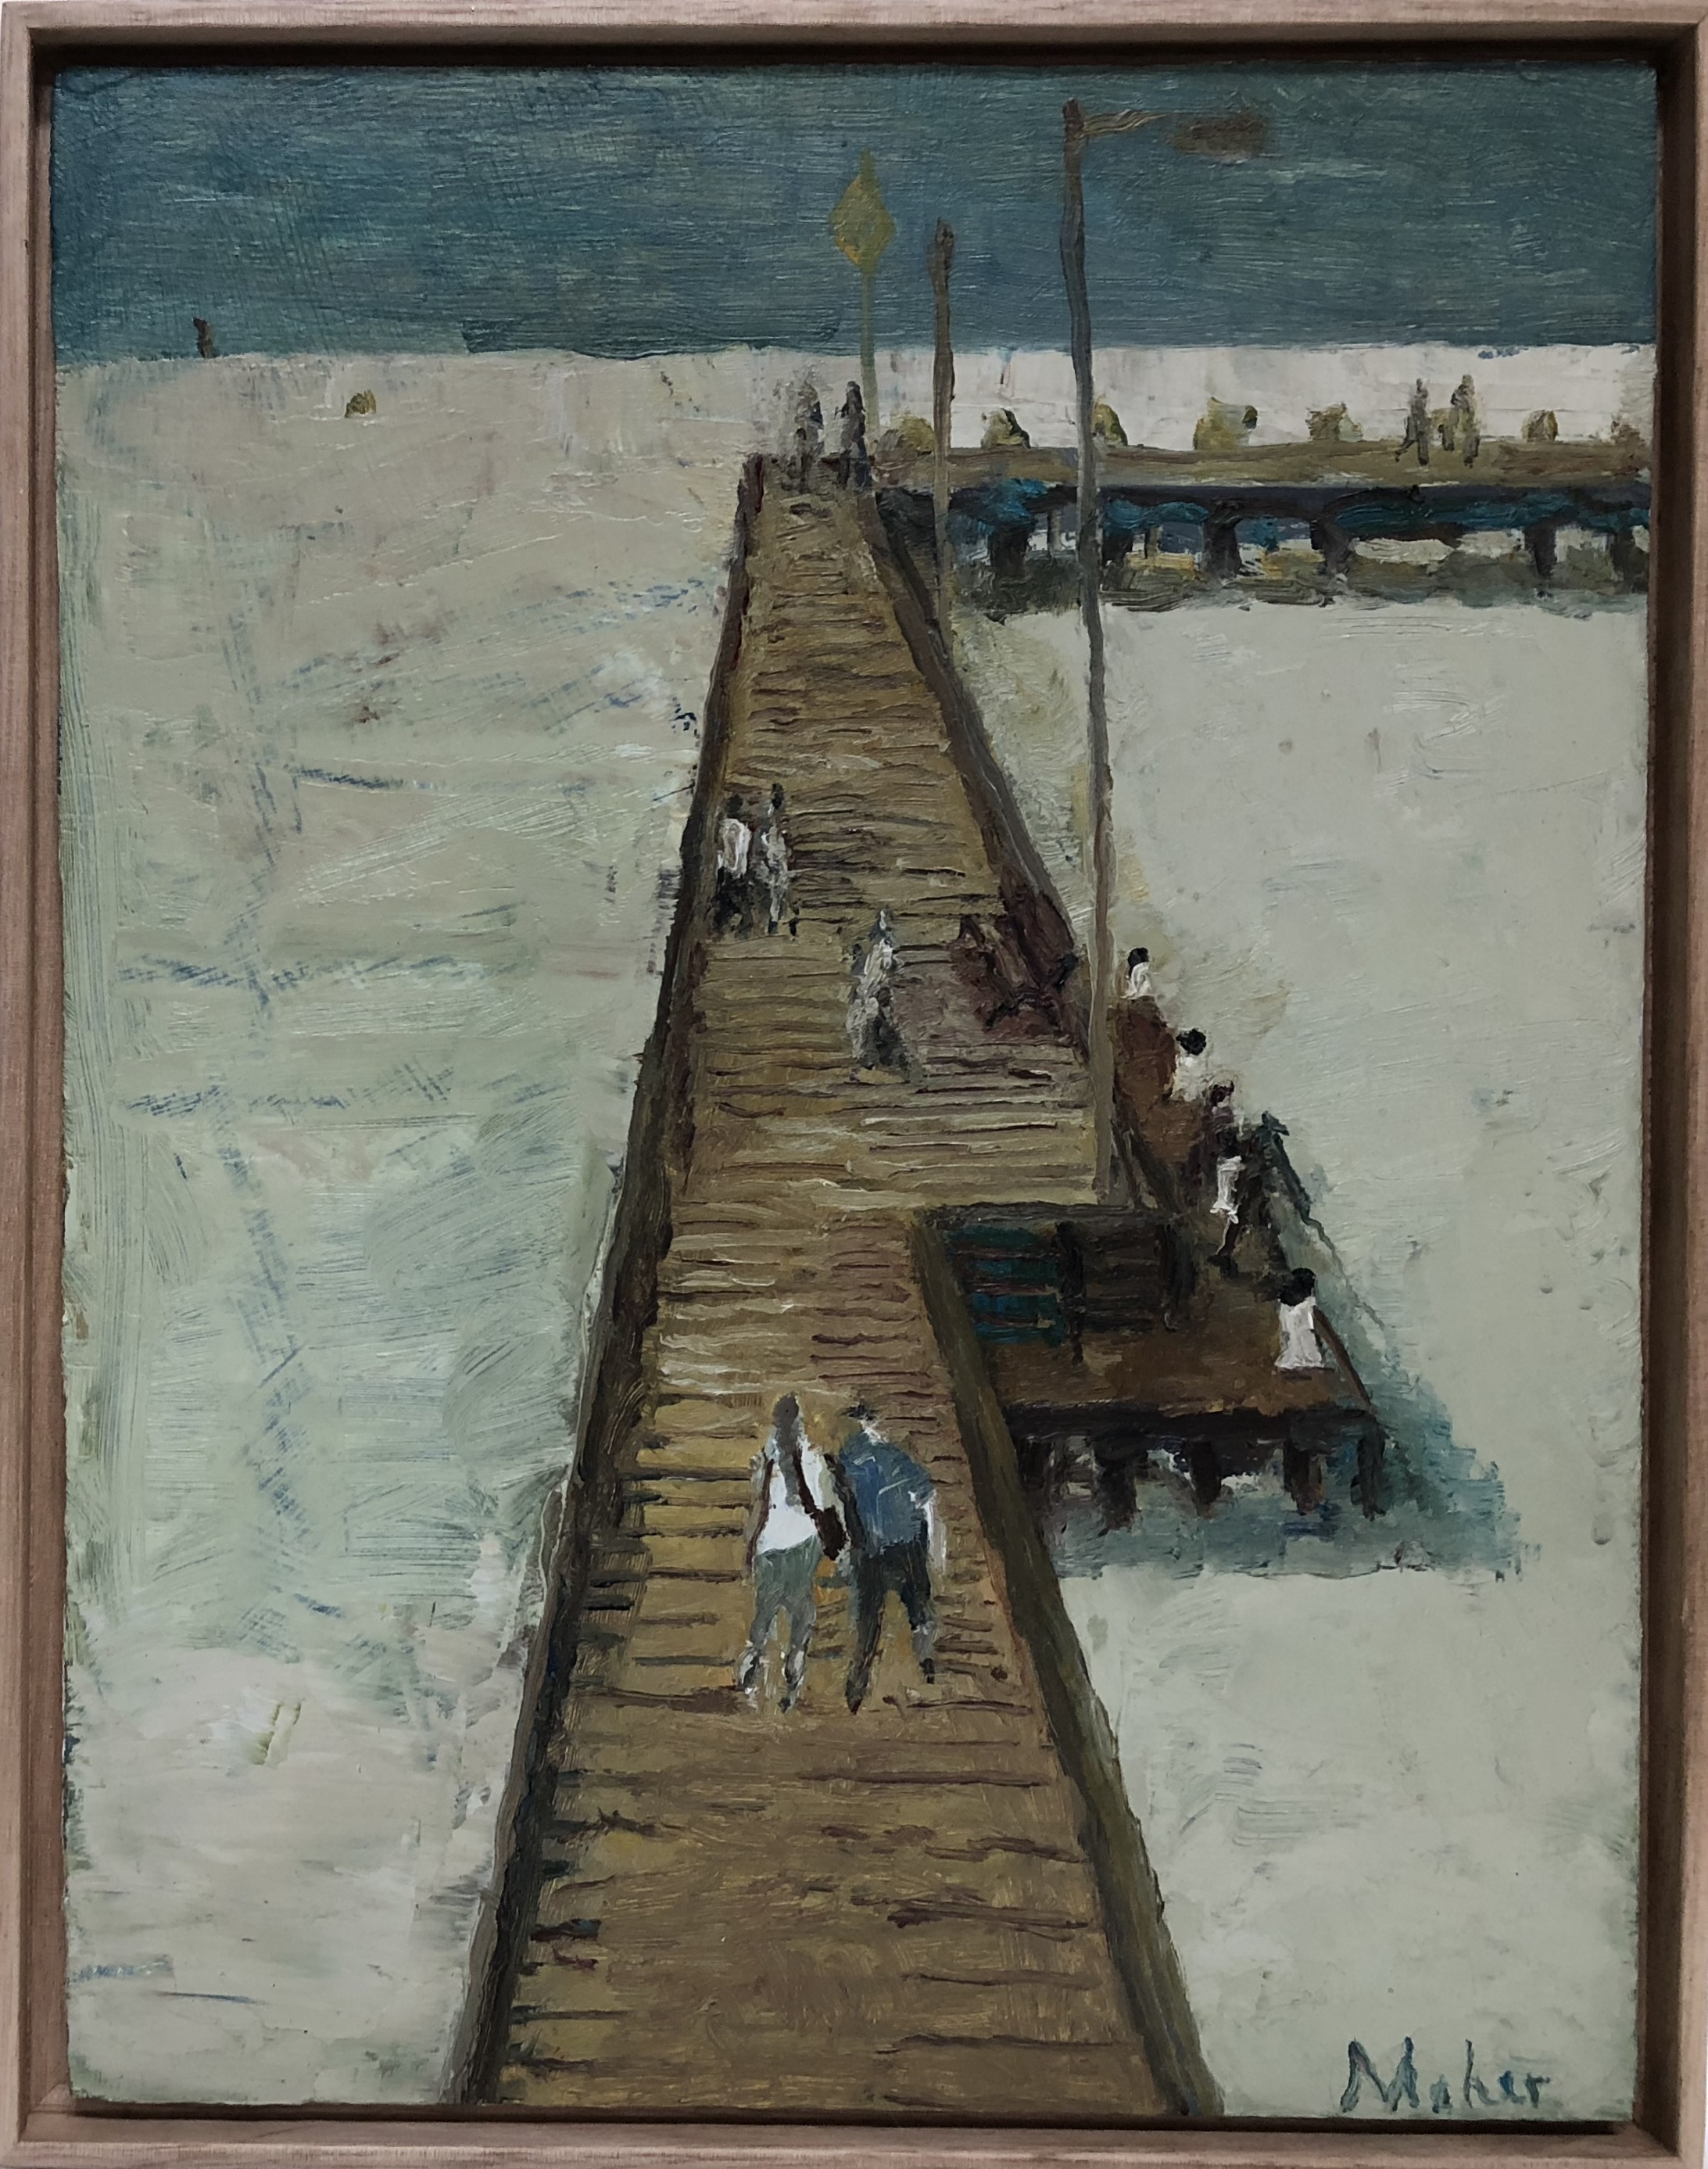 Paul Maher  Portsea Pier  2017 oil on board 31 x 24.5cm framed